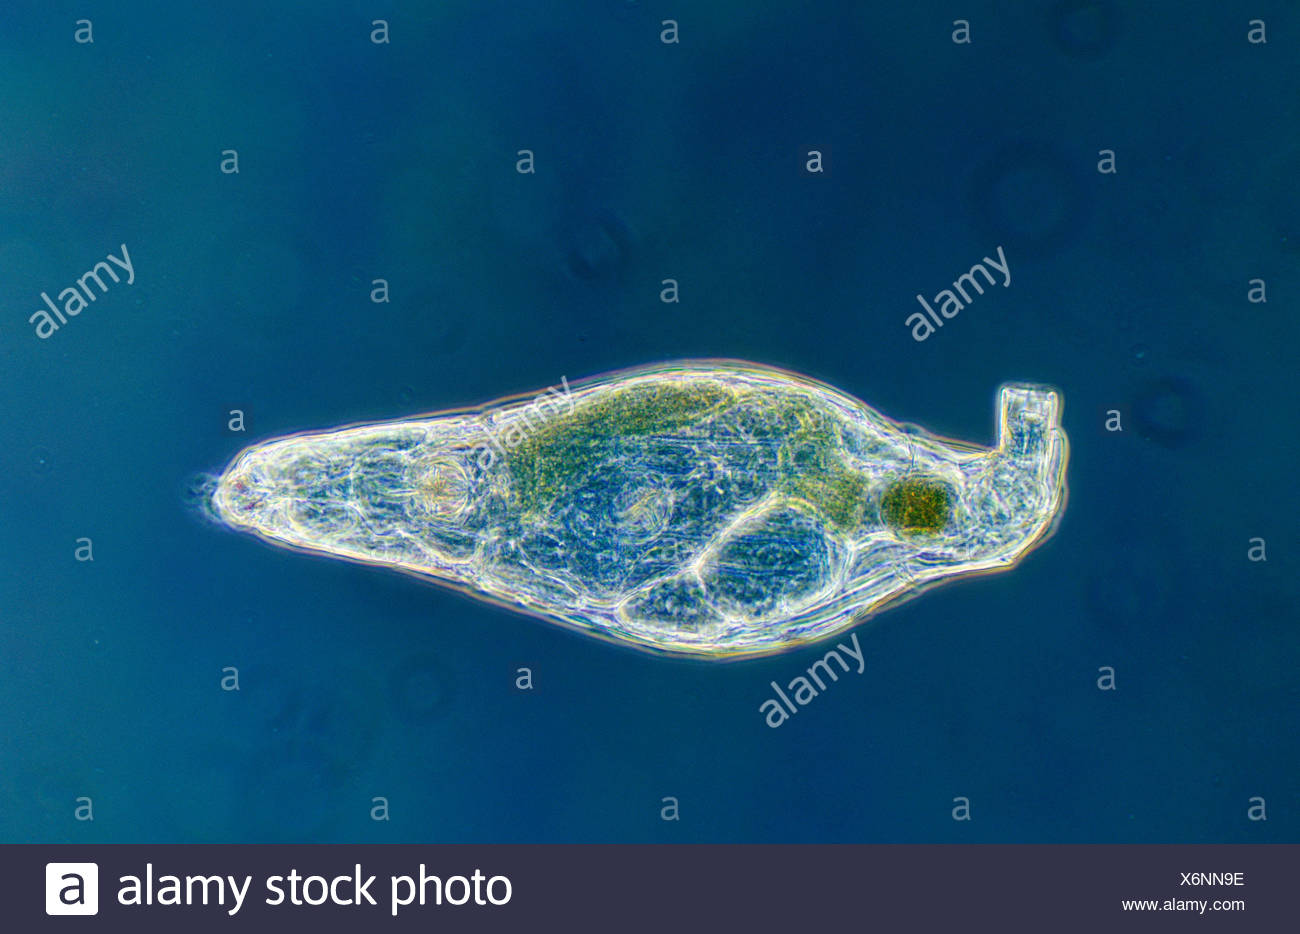 Rotifer (Rotaria rotatoria) a microscopically small animal with a length of 004 to 240 mm, waterborne and can inhabit highly acidic environments - Stock Image